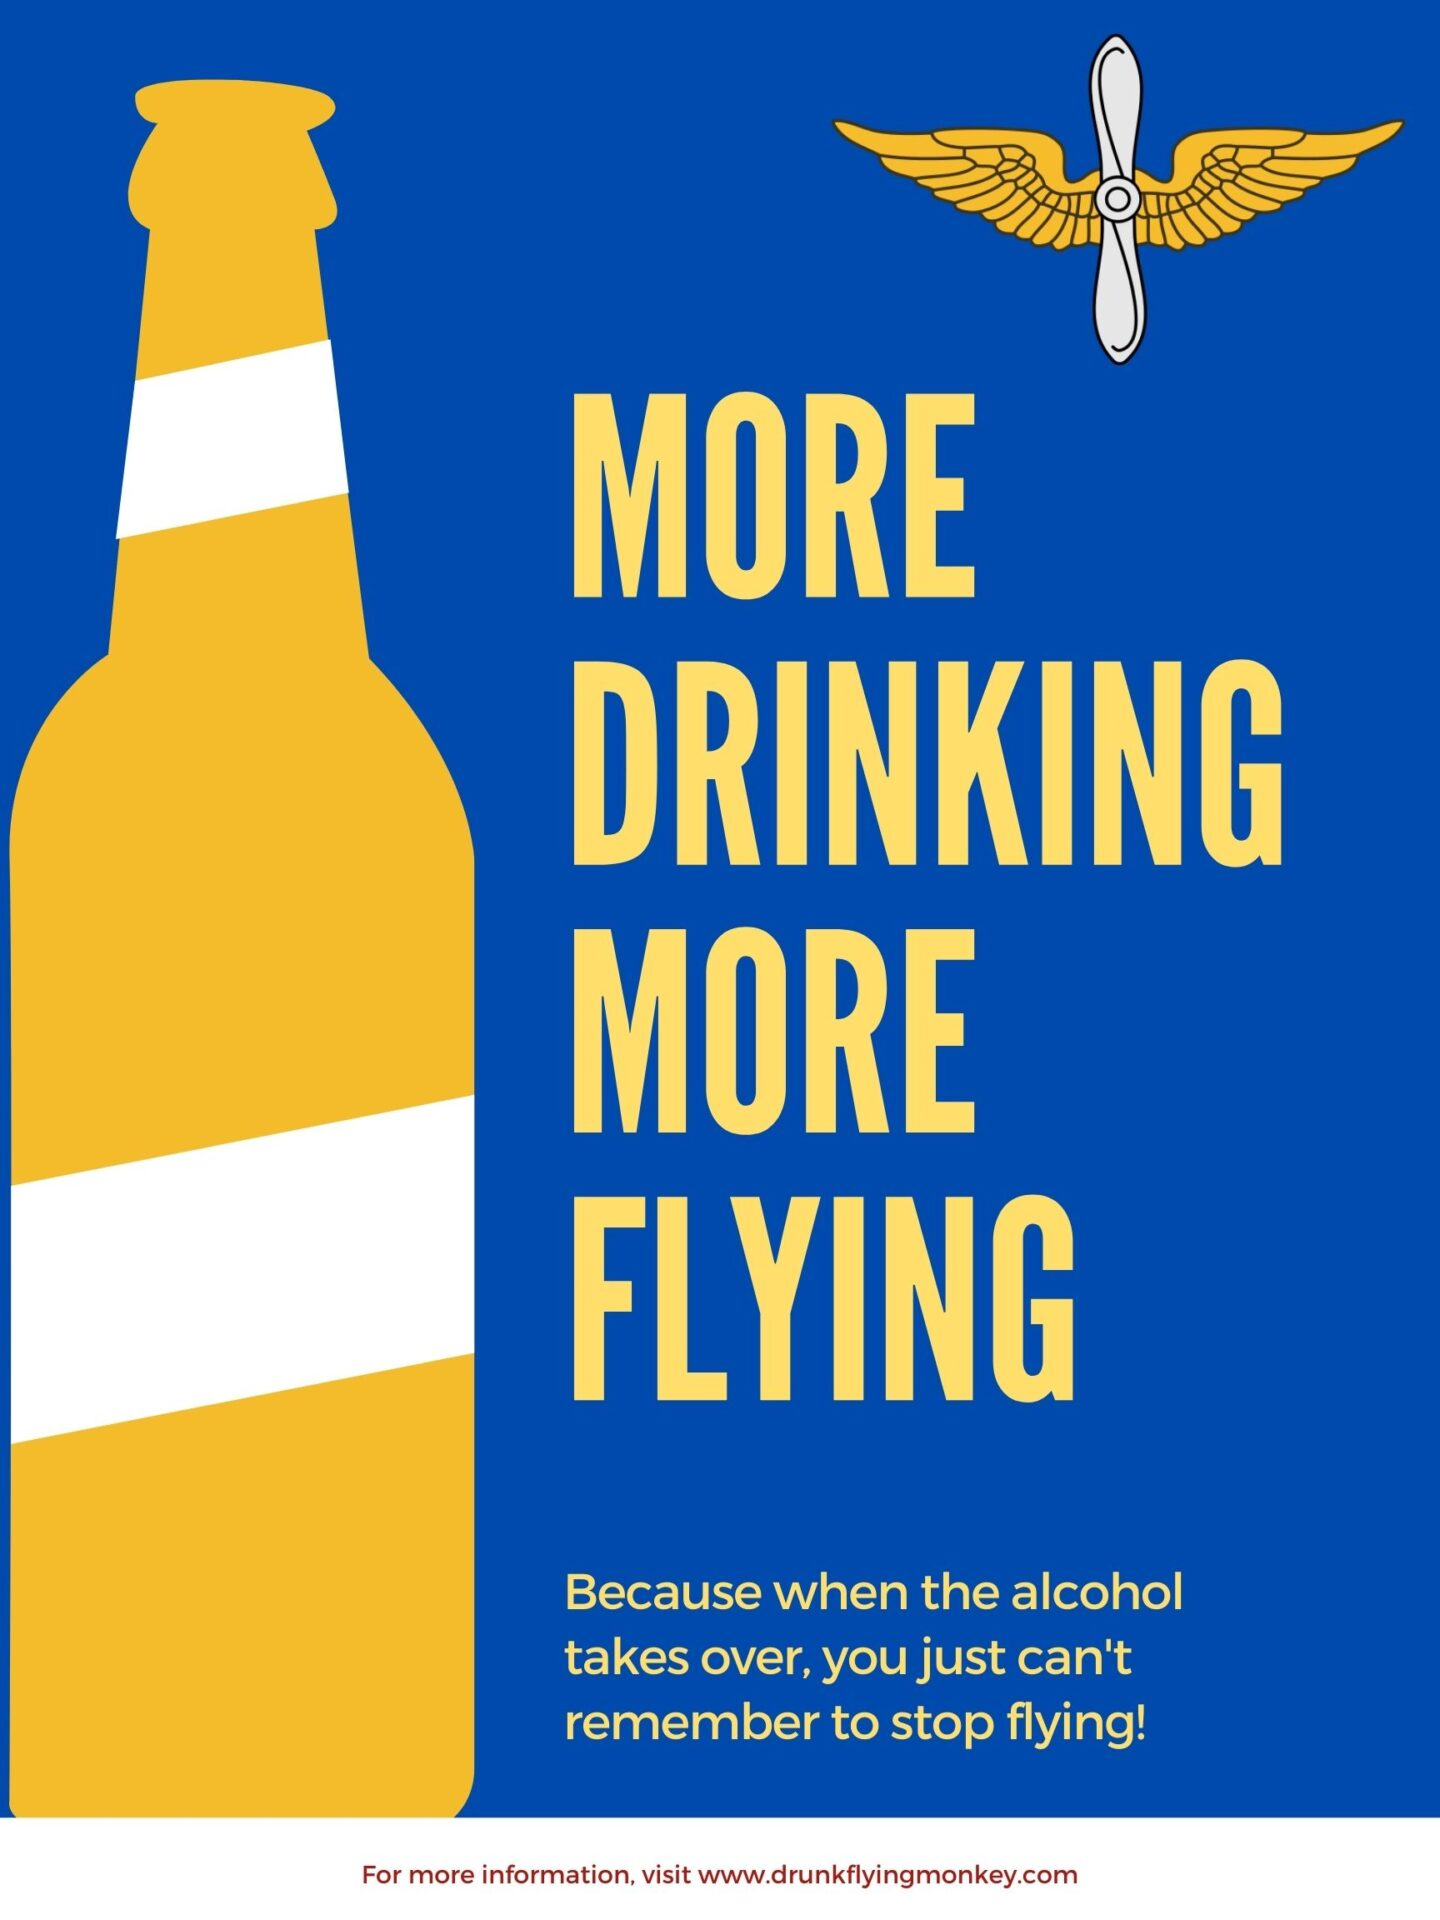 More drinking leads to more flying